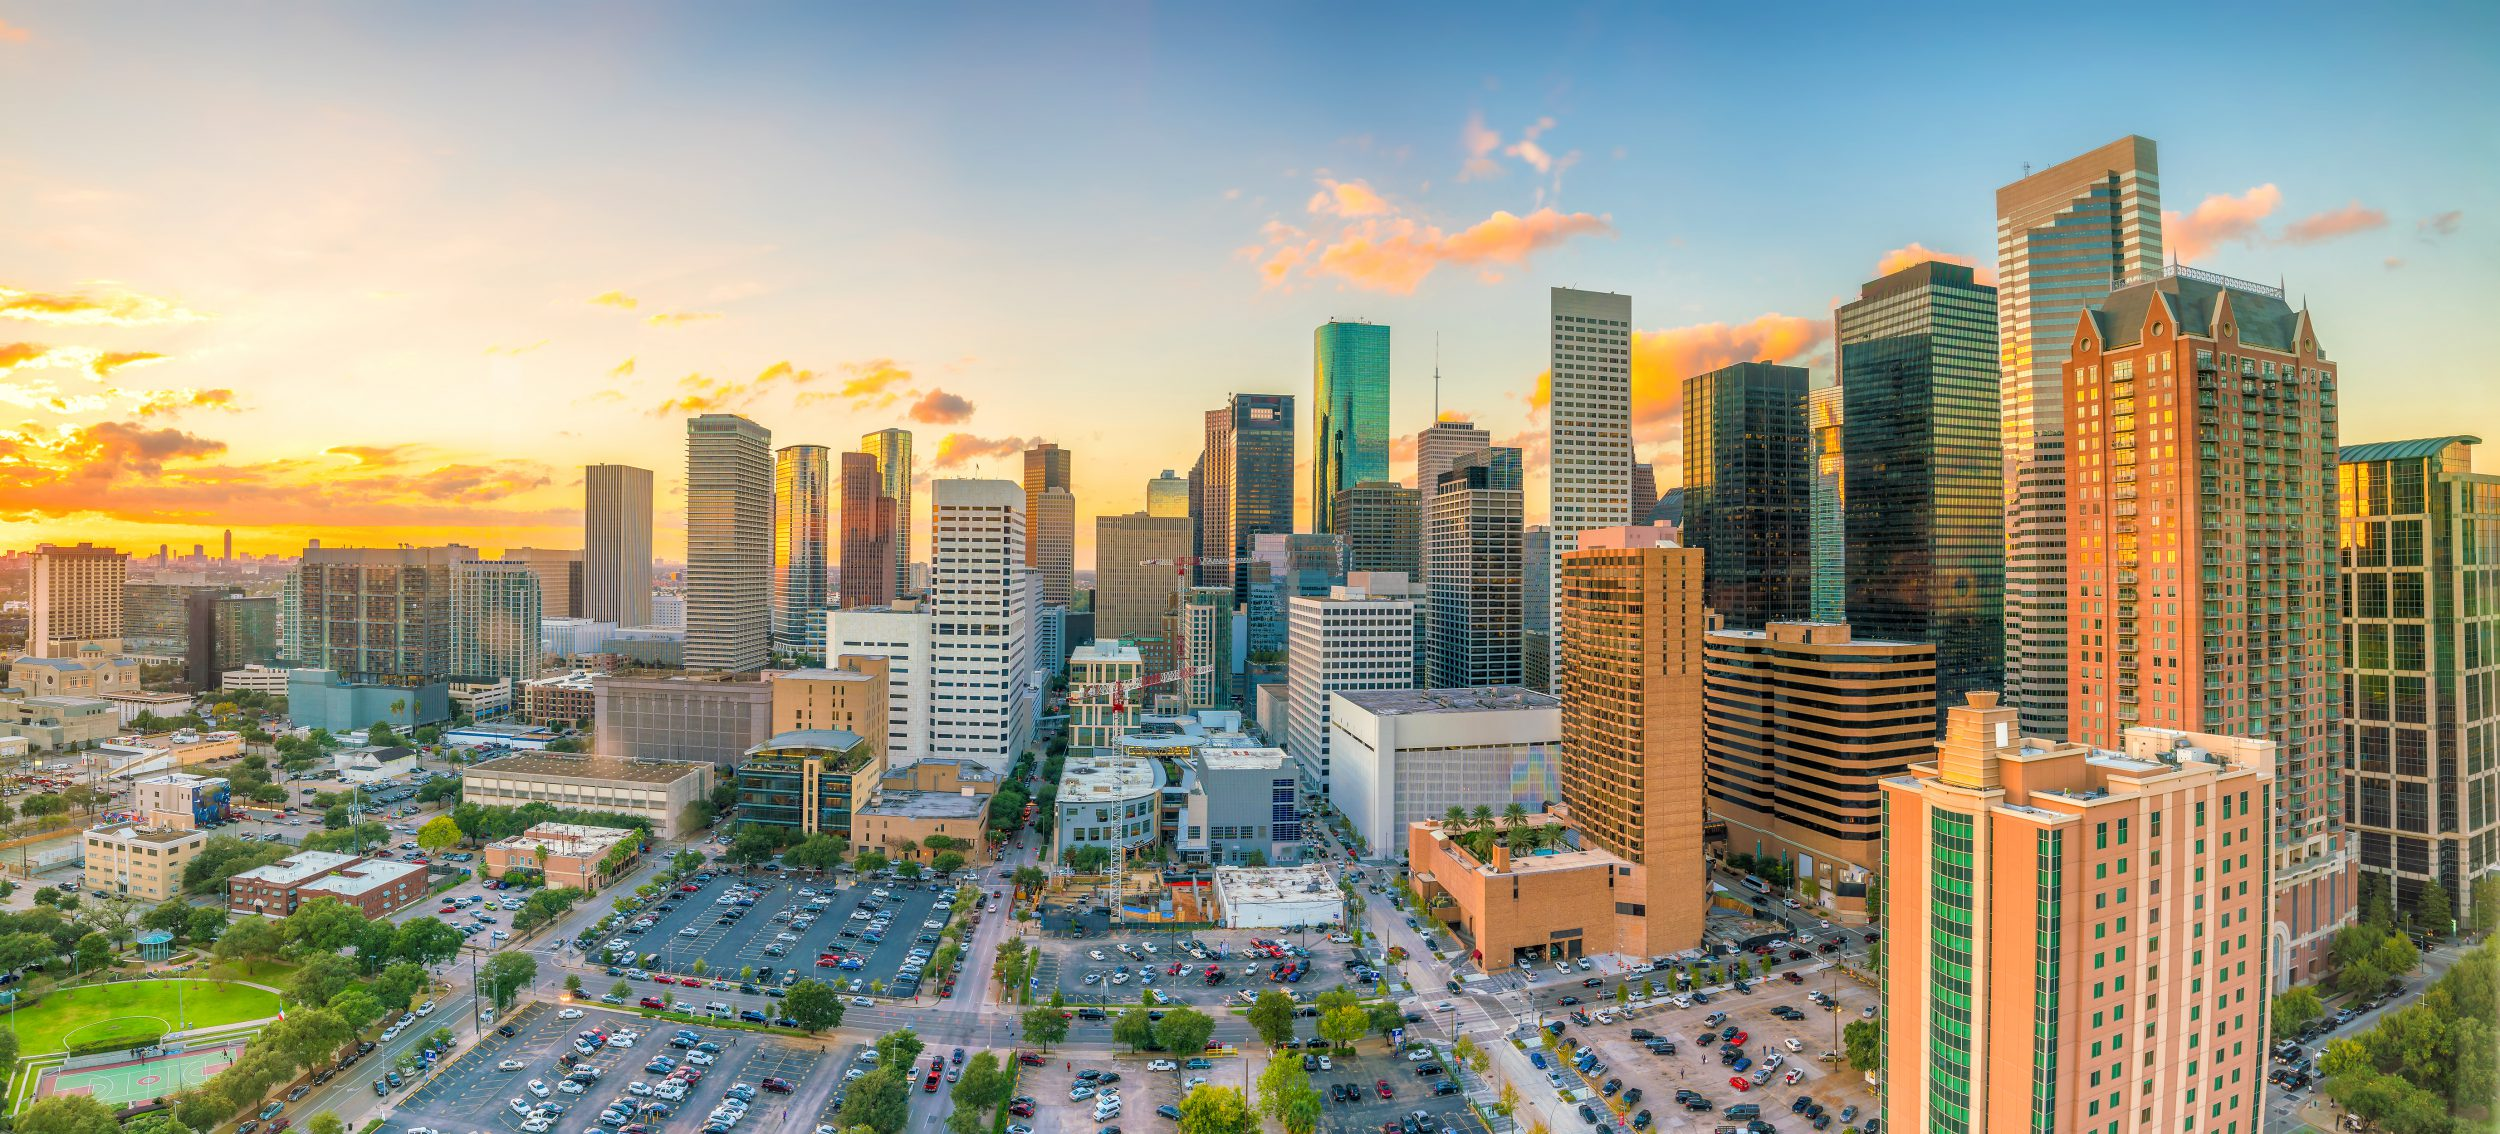 Image of the Skyline of Houston, Texas